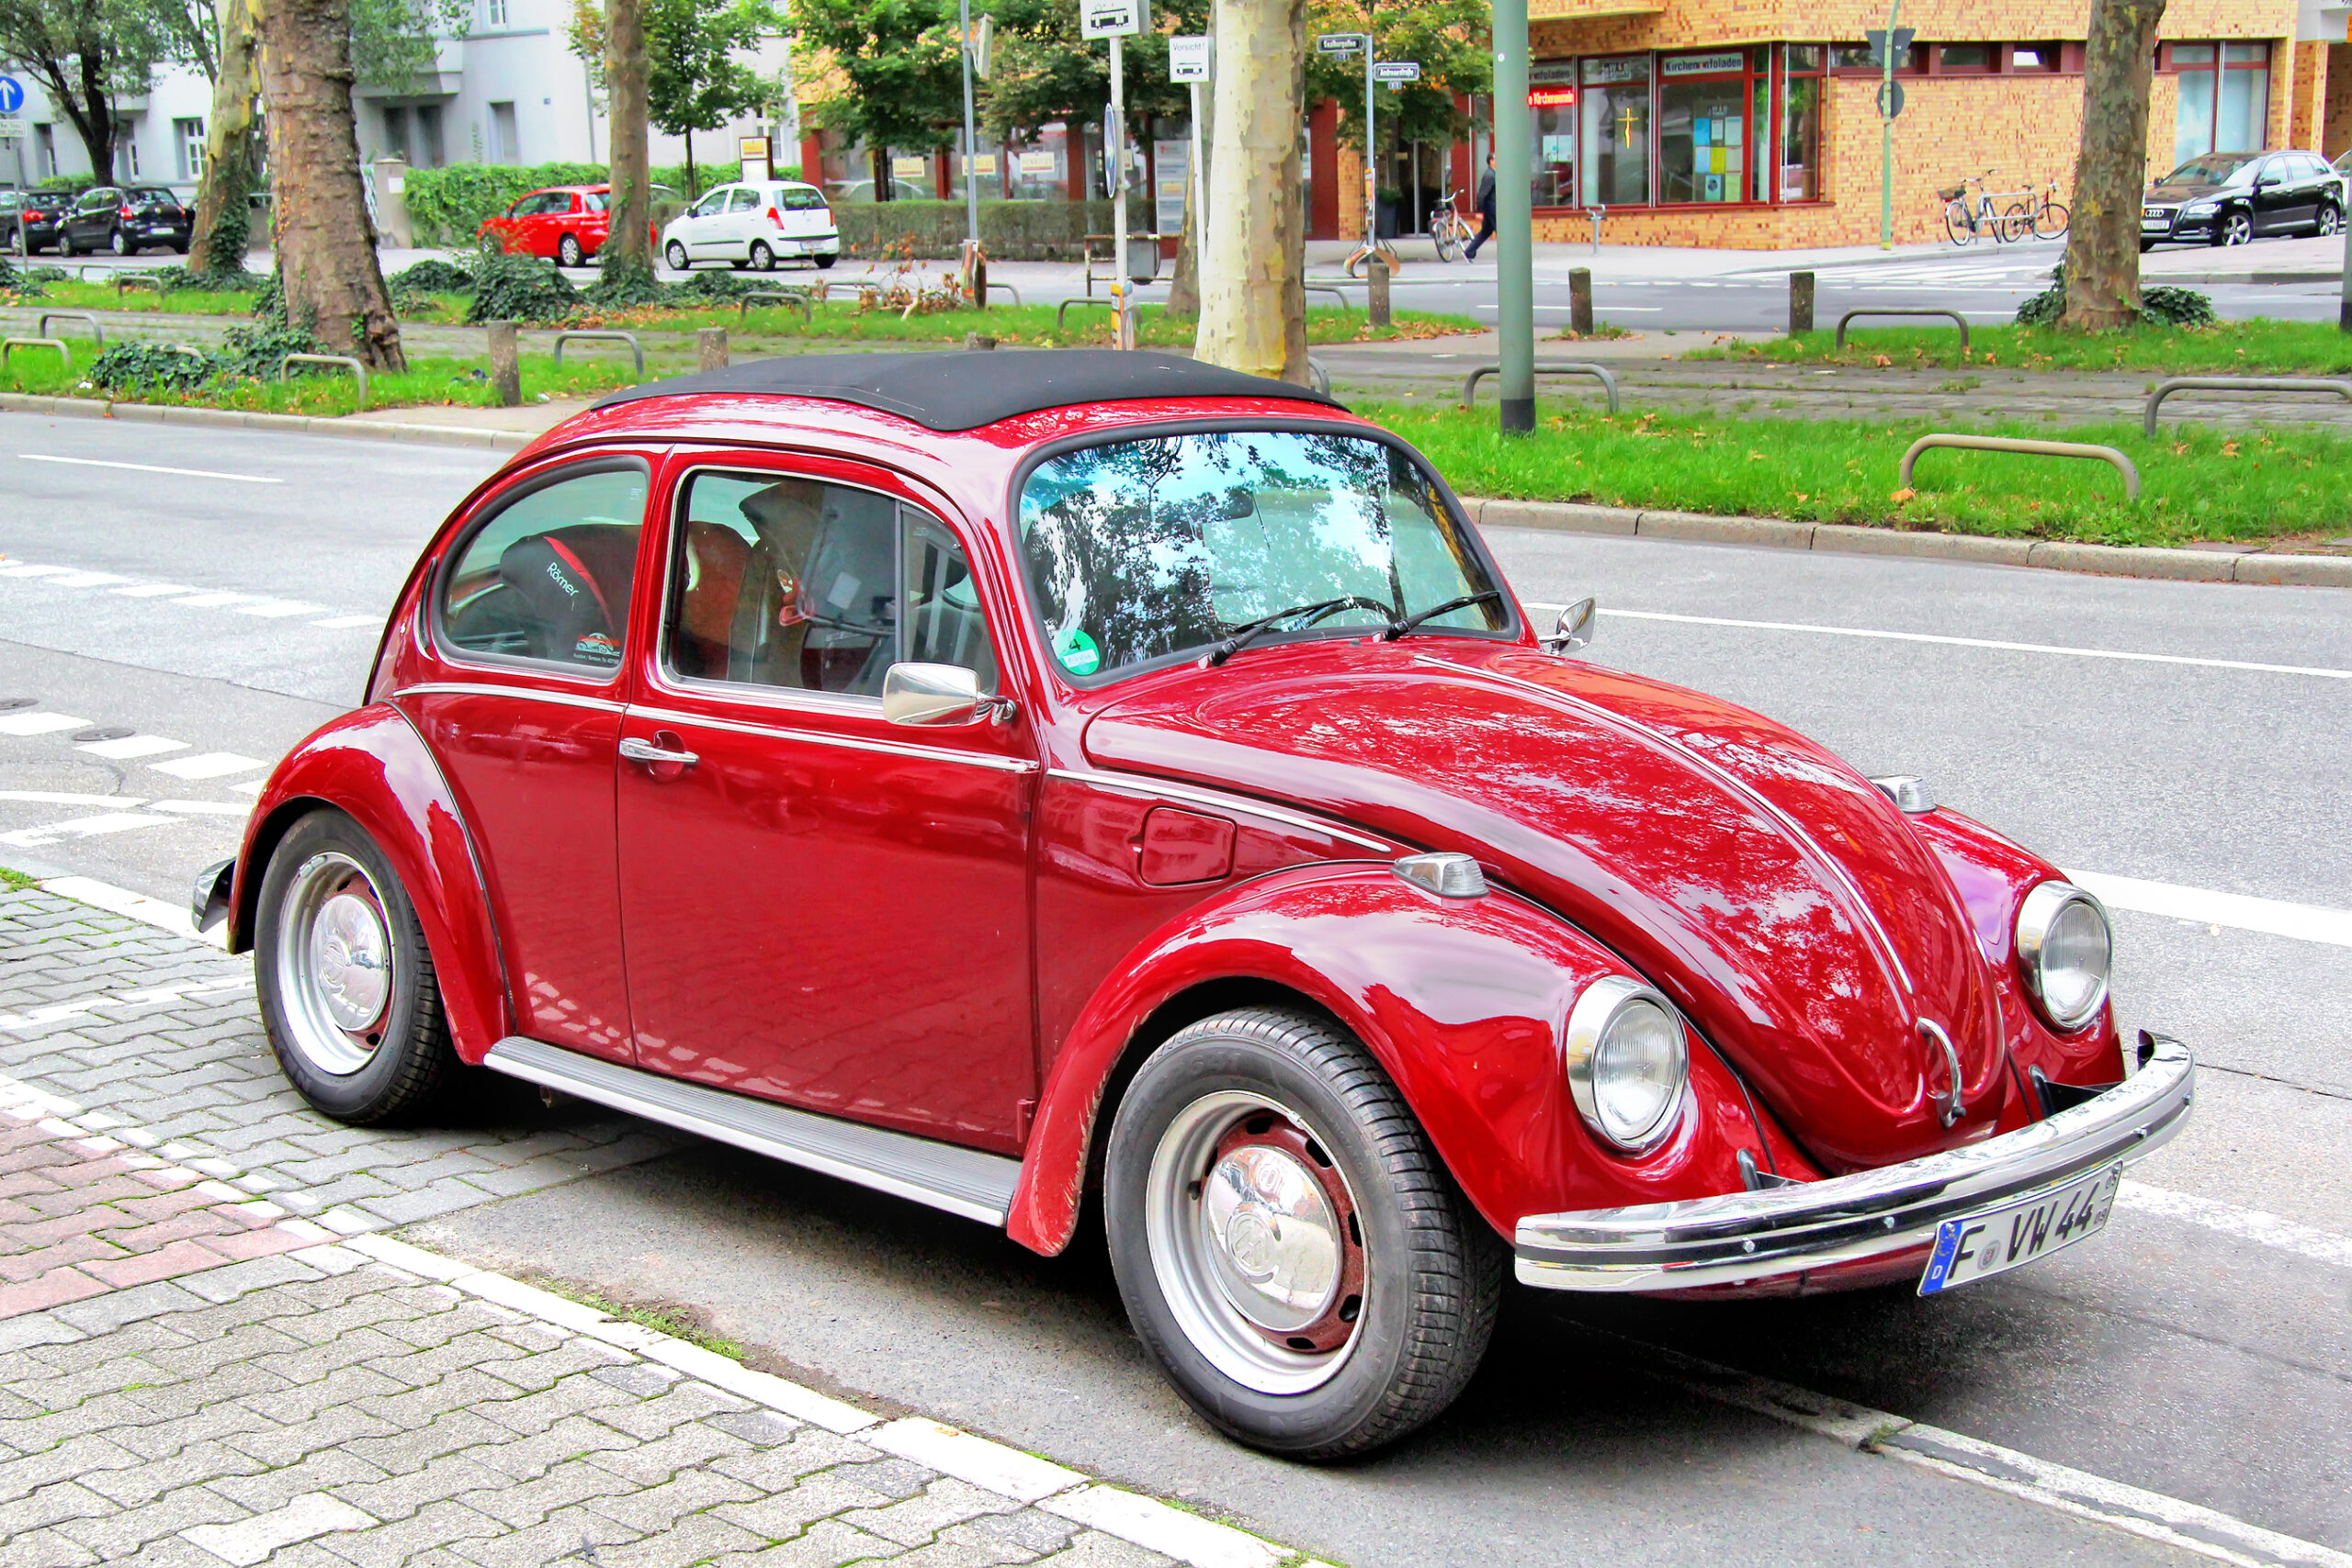 VW-Käfer in rot